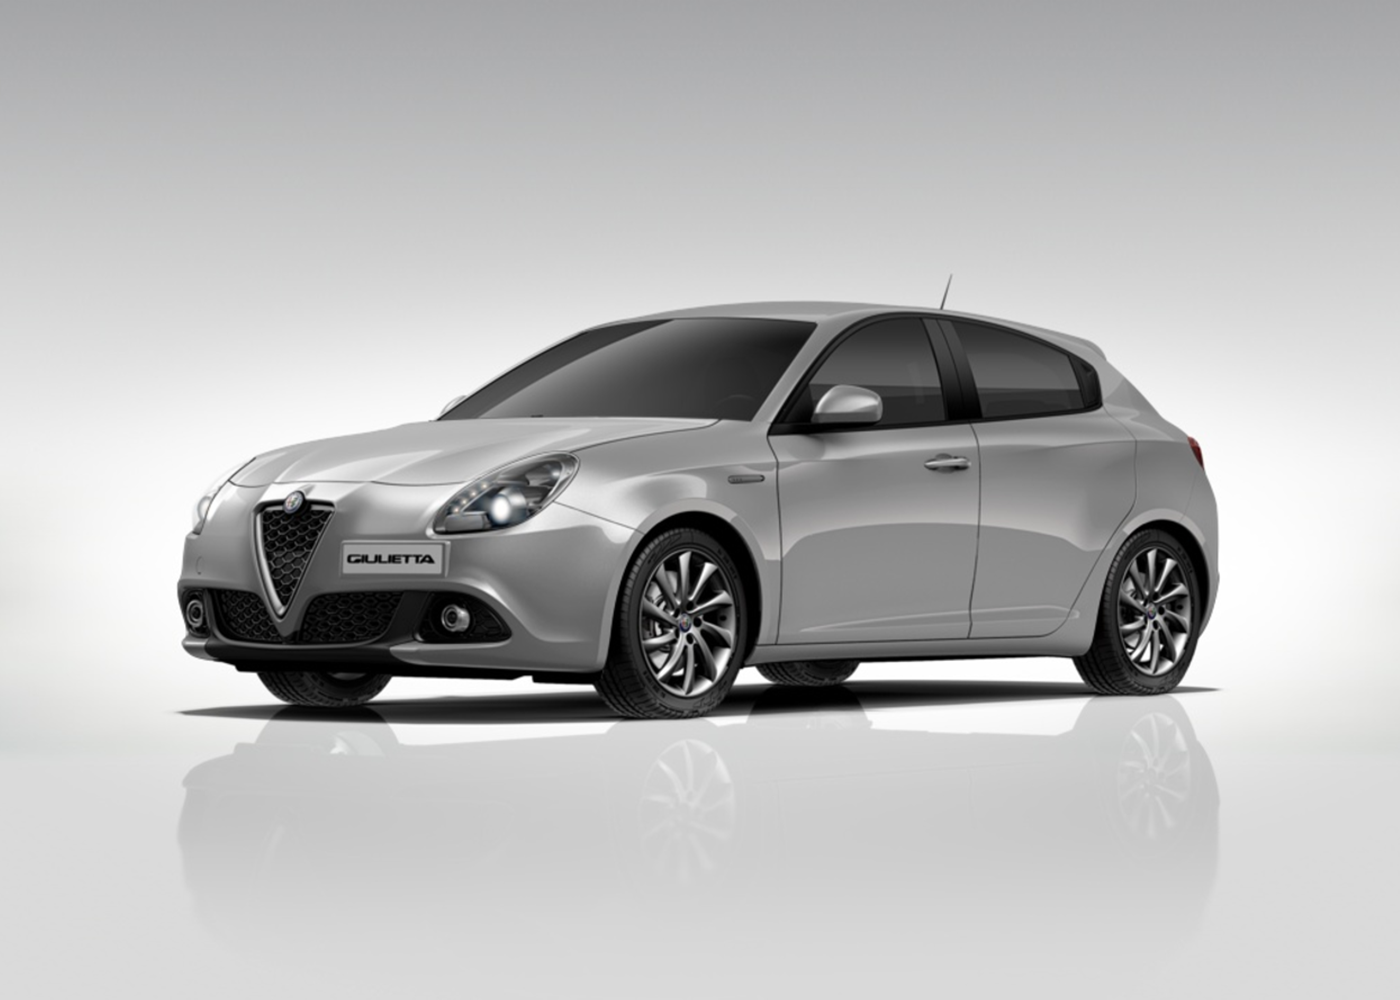 alfa romeo giulietta offerte km 0 with 59c392287d51f3d40512665e on 120146237 besides 5ace04bf8ead0ee008718986 as well 5a7588338ead0eeb4a1163ff furthermore 5ace04bf8ead0ee008718986 also 90787.